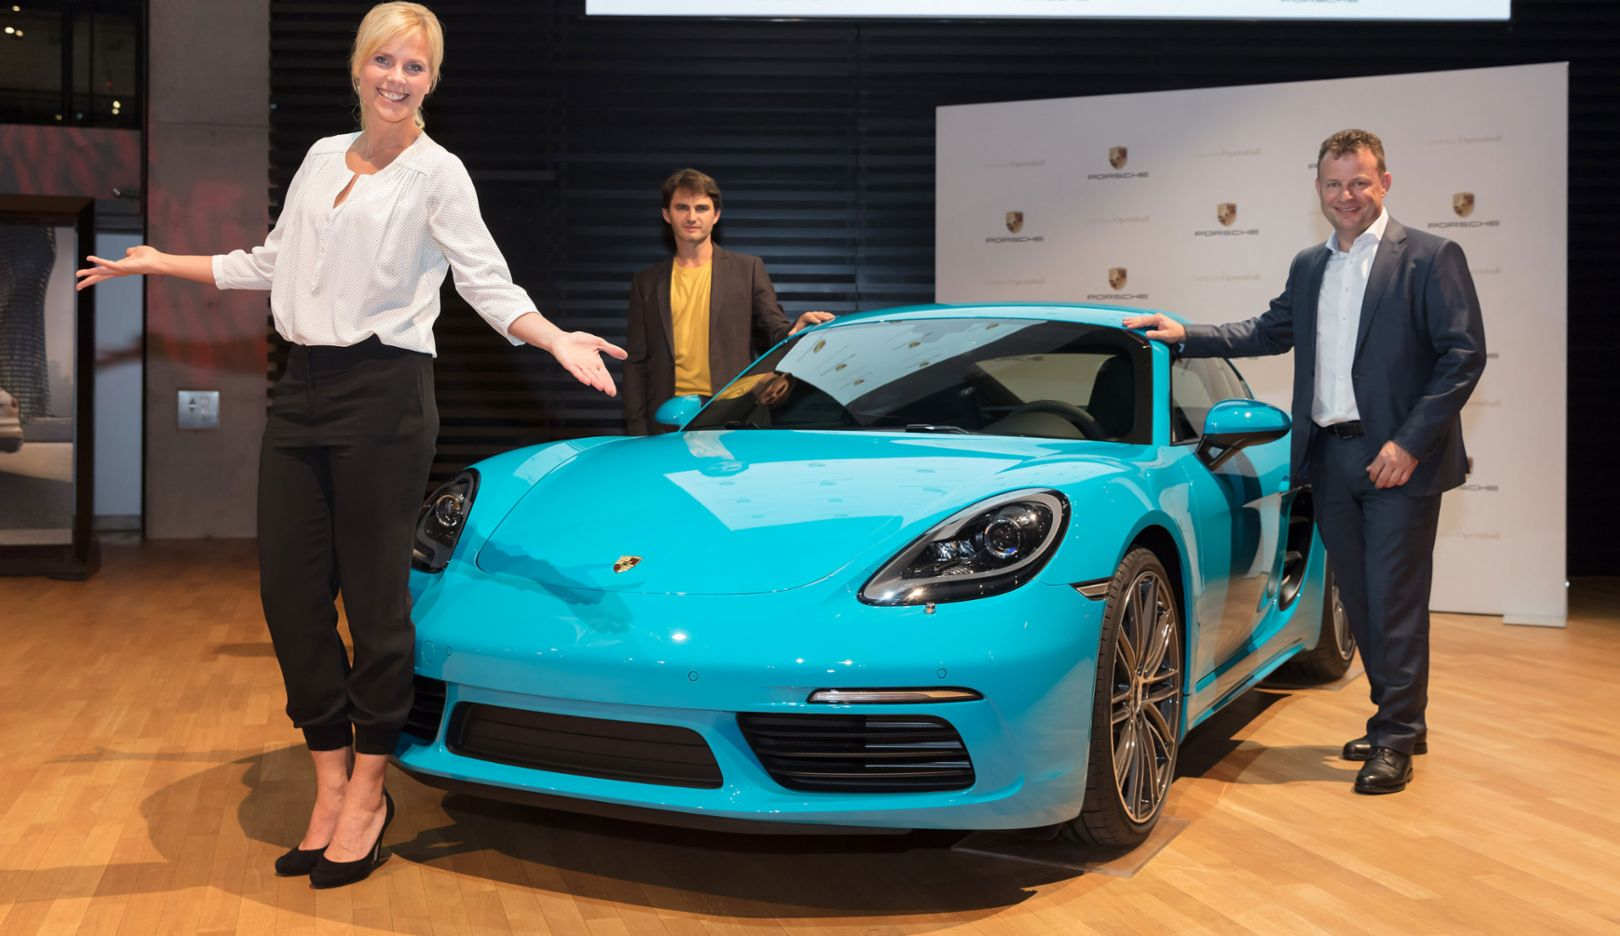 Melanie Marschke, Actress, Lenn Kudrjawizki, Actor, Gerd Rupp, Chair of the Executive Board at Porsche Leipzig, l-r, 718 Cayman, 2017, Porsche AG